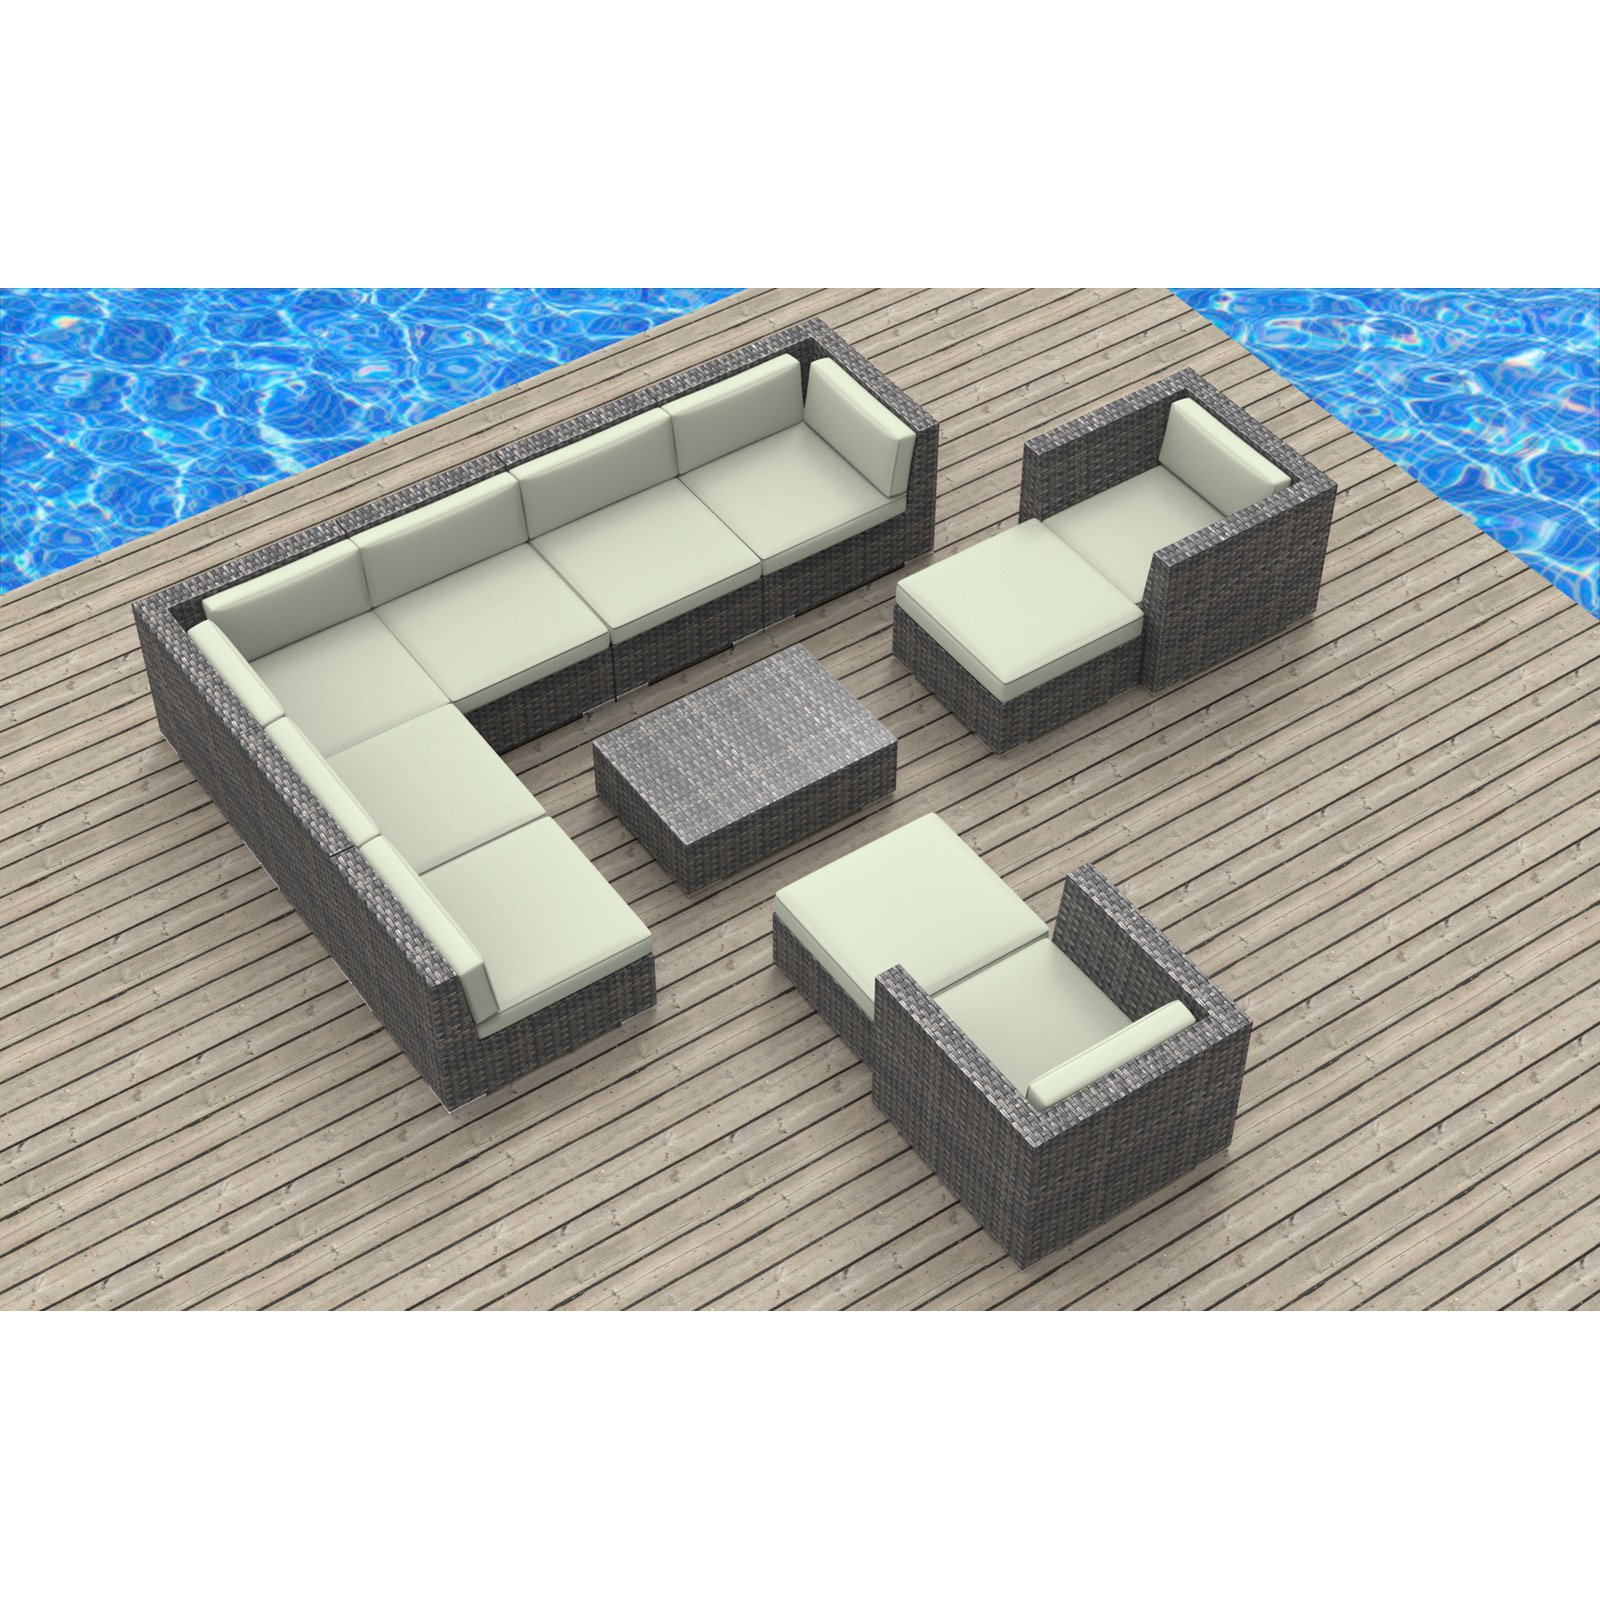 Urban Furnishing Aruba 11 Piece Outdoor Wicker Patio Furniture Set